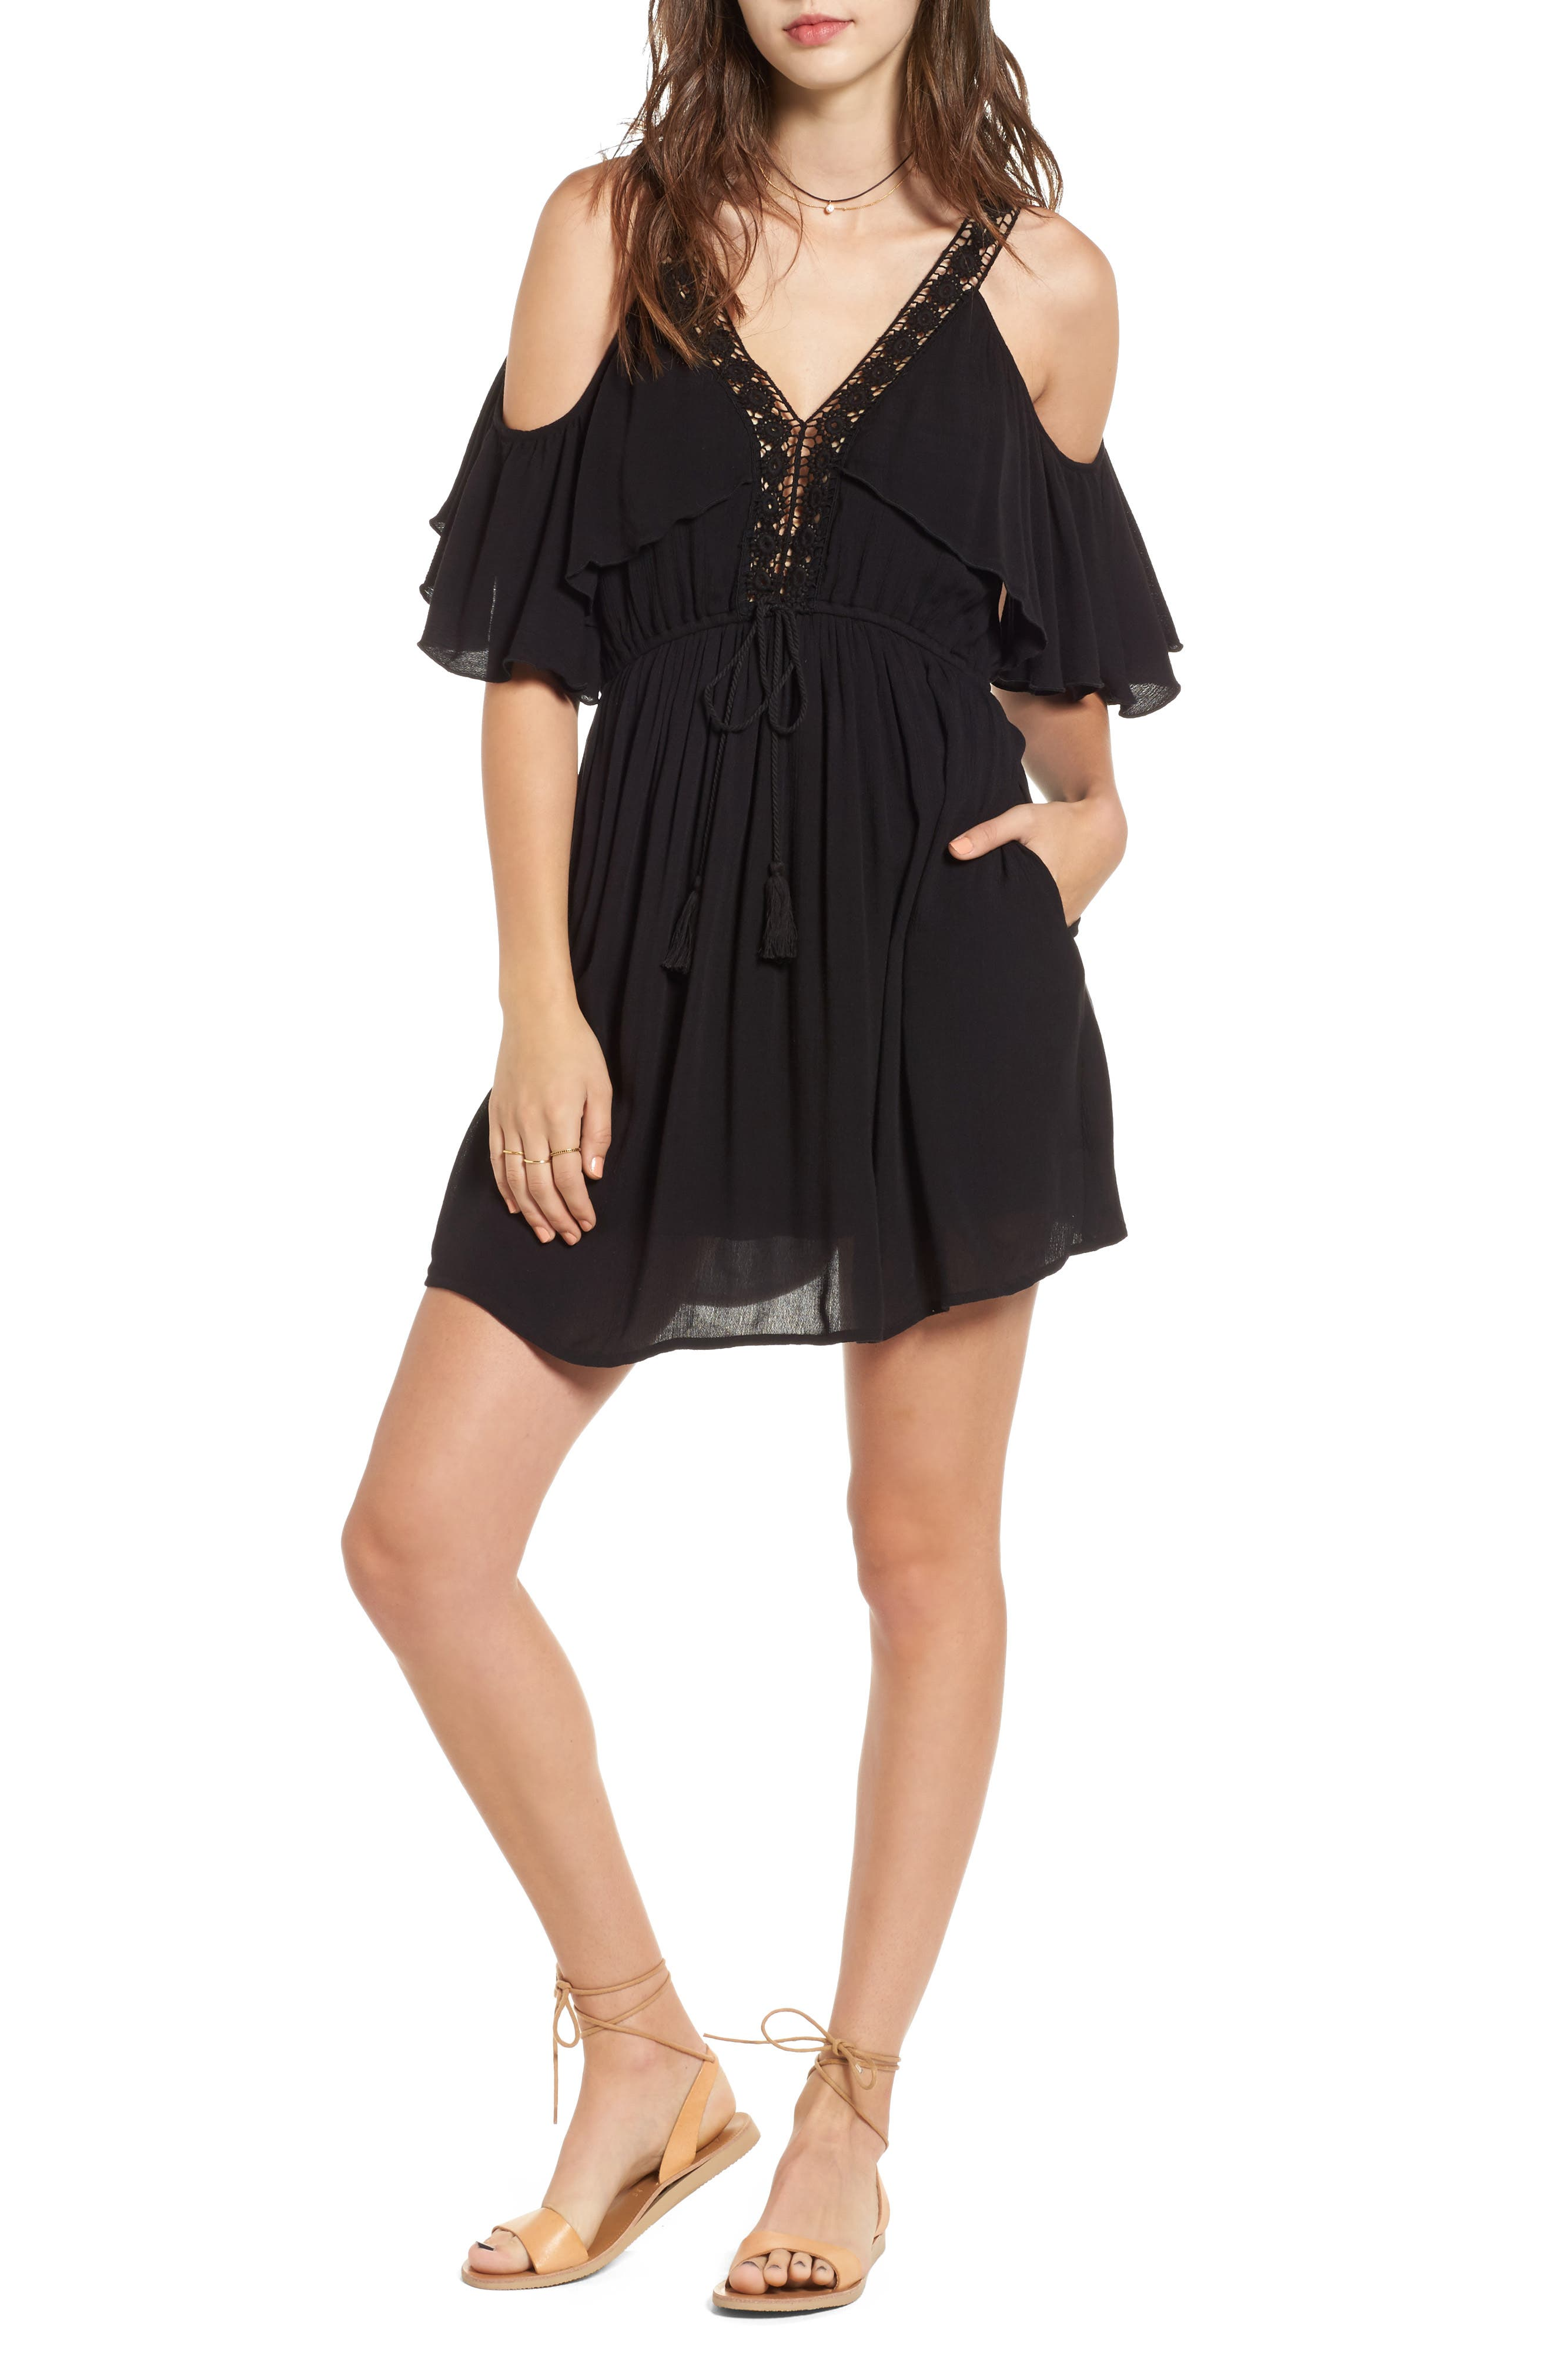 BAND OF GYPSIES Cold Shoulder Dress